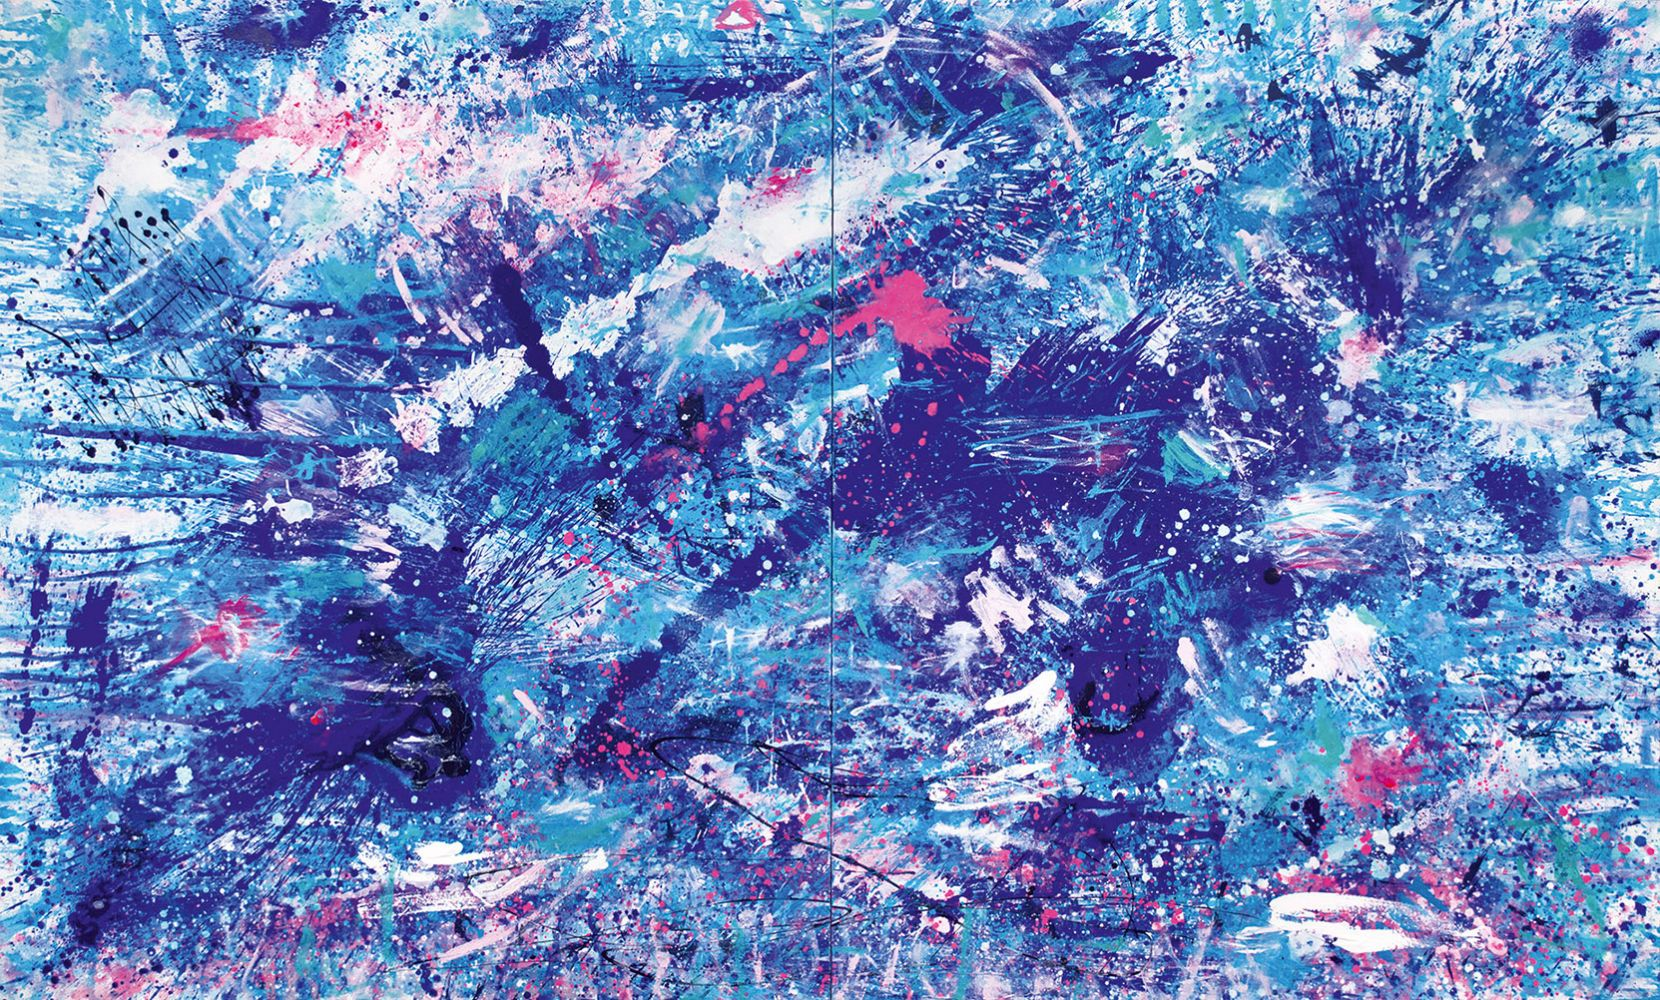 J. Steven Manolis, Splash (Pink Sands), 2016, 72 x 120 inches, Acrylic on canvas, Abstract expressionism paintings for sale at Manolis Projects Art Gallery, Miami, Fl